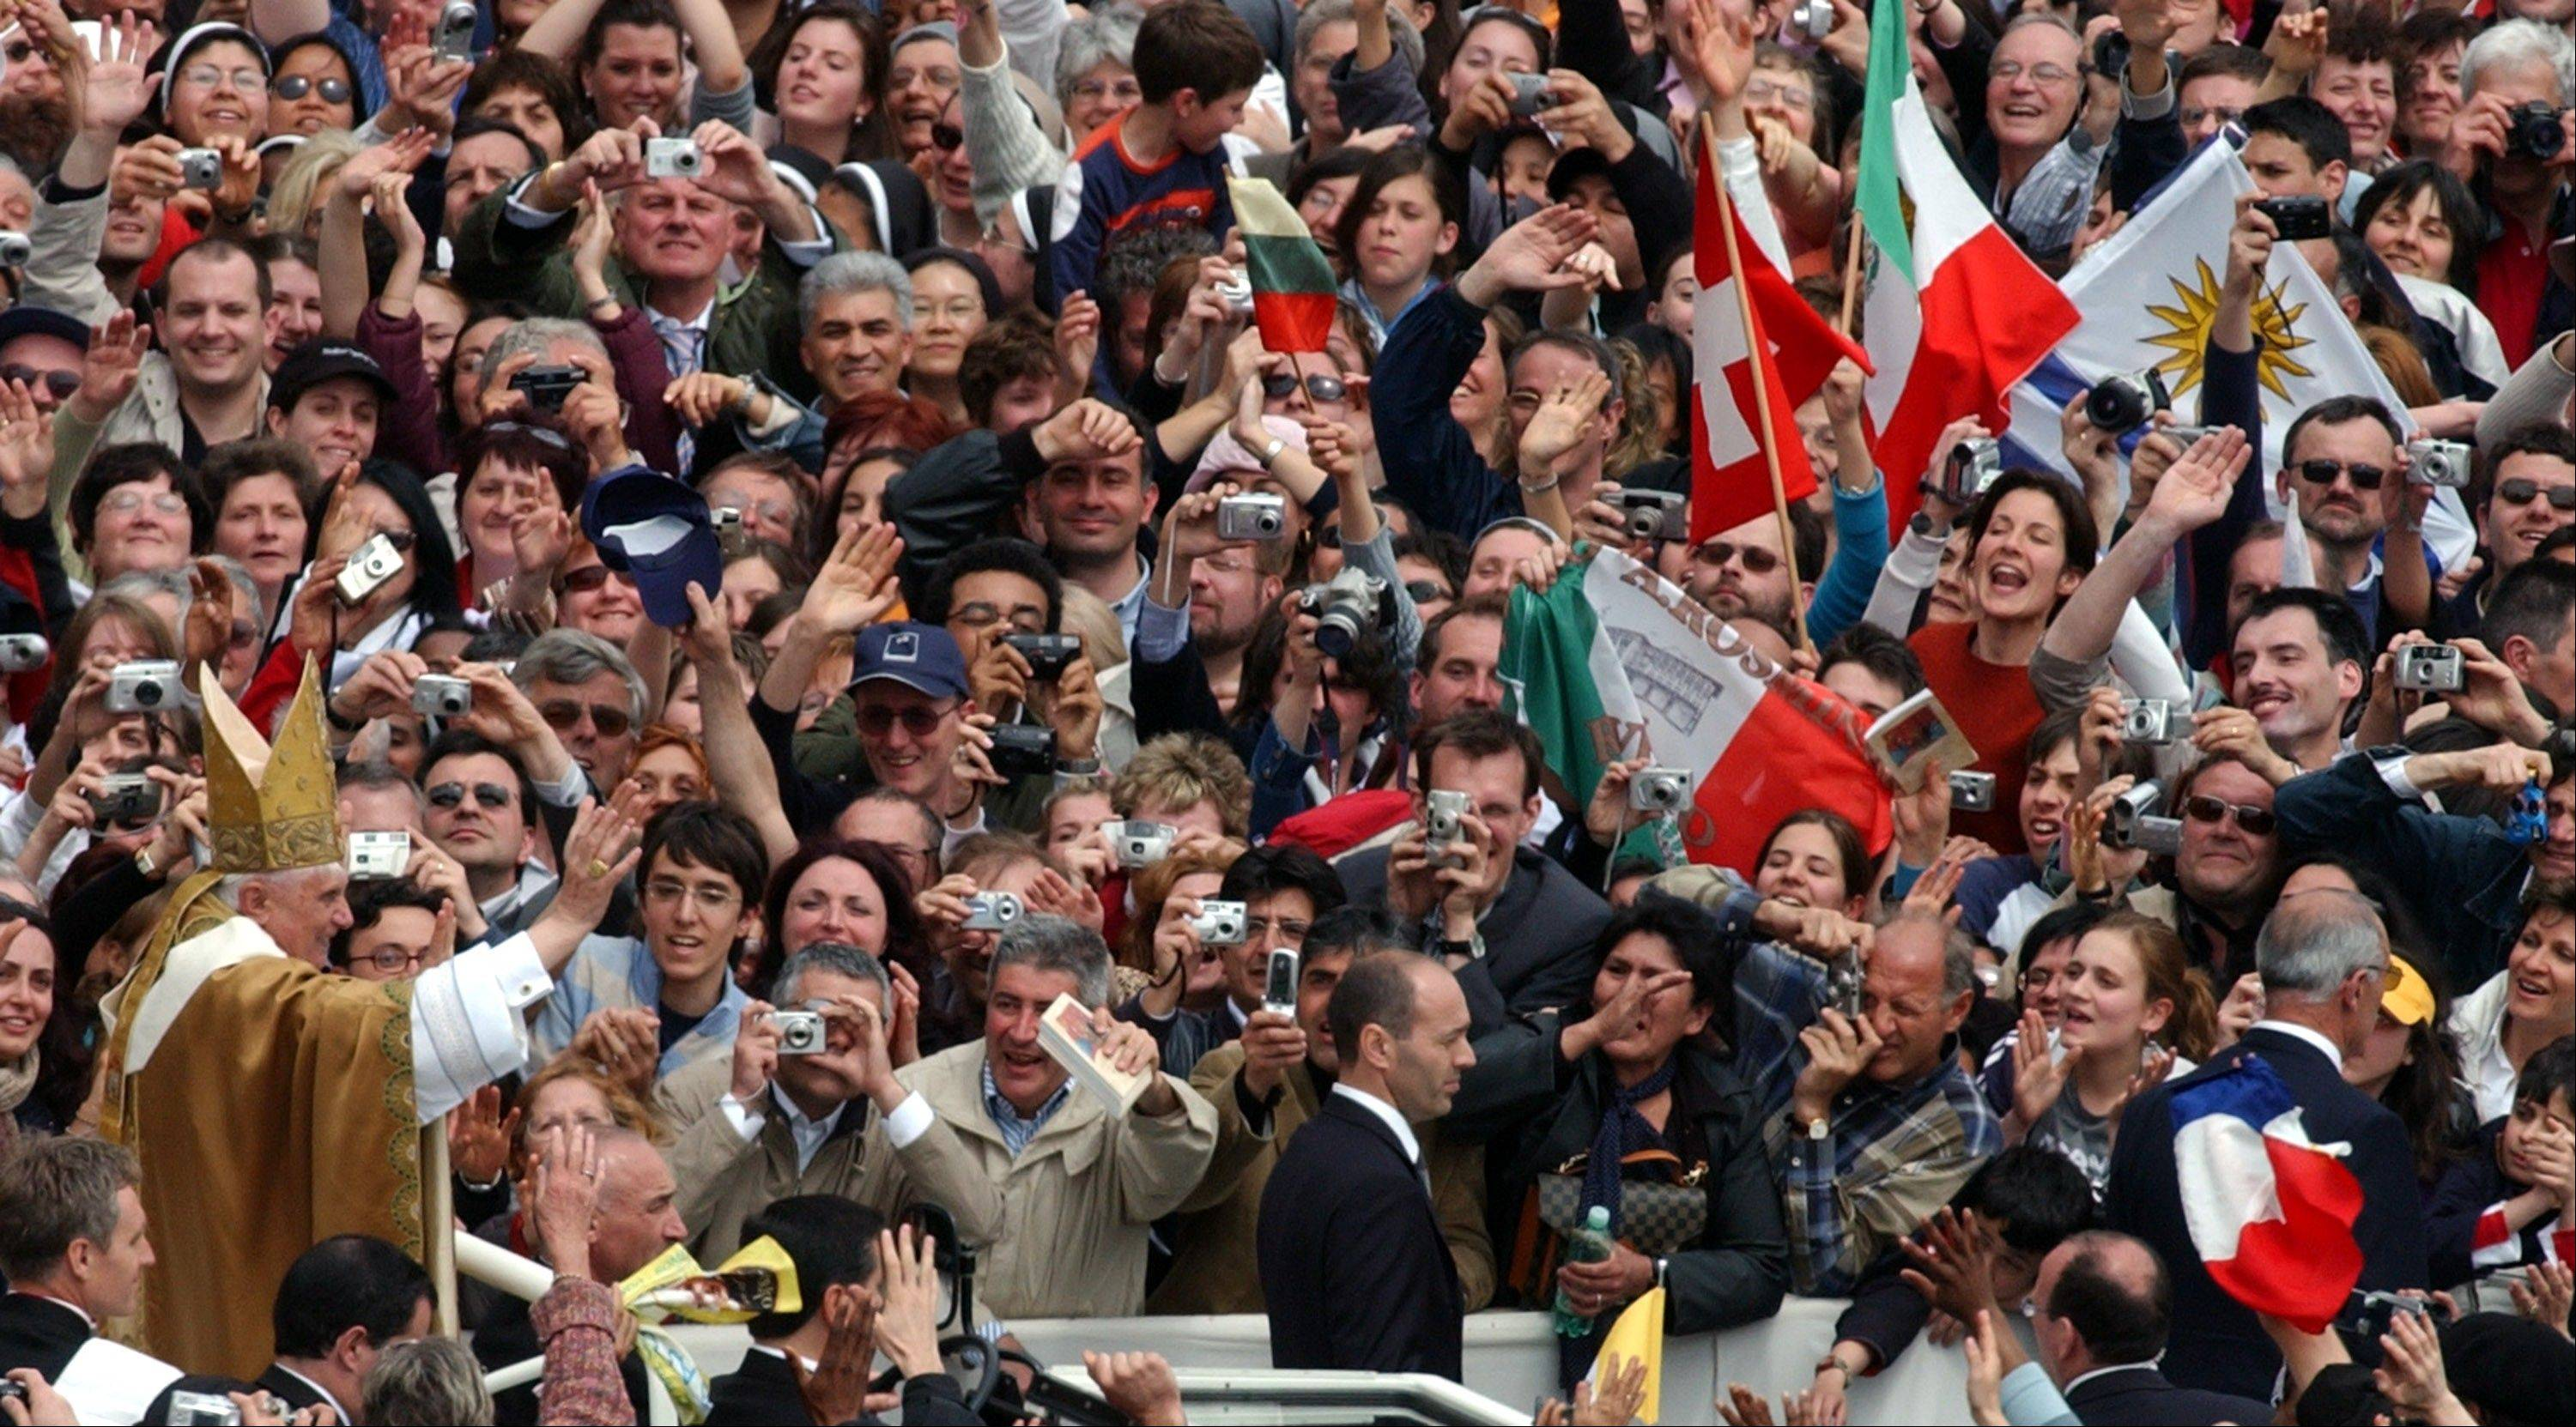 Pope Benedict XVI greets the crowd after celebrating his installation Mass in St. Peter's Square at the Vatican.